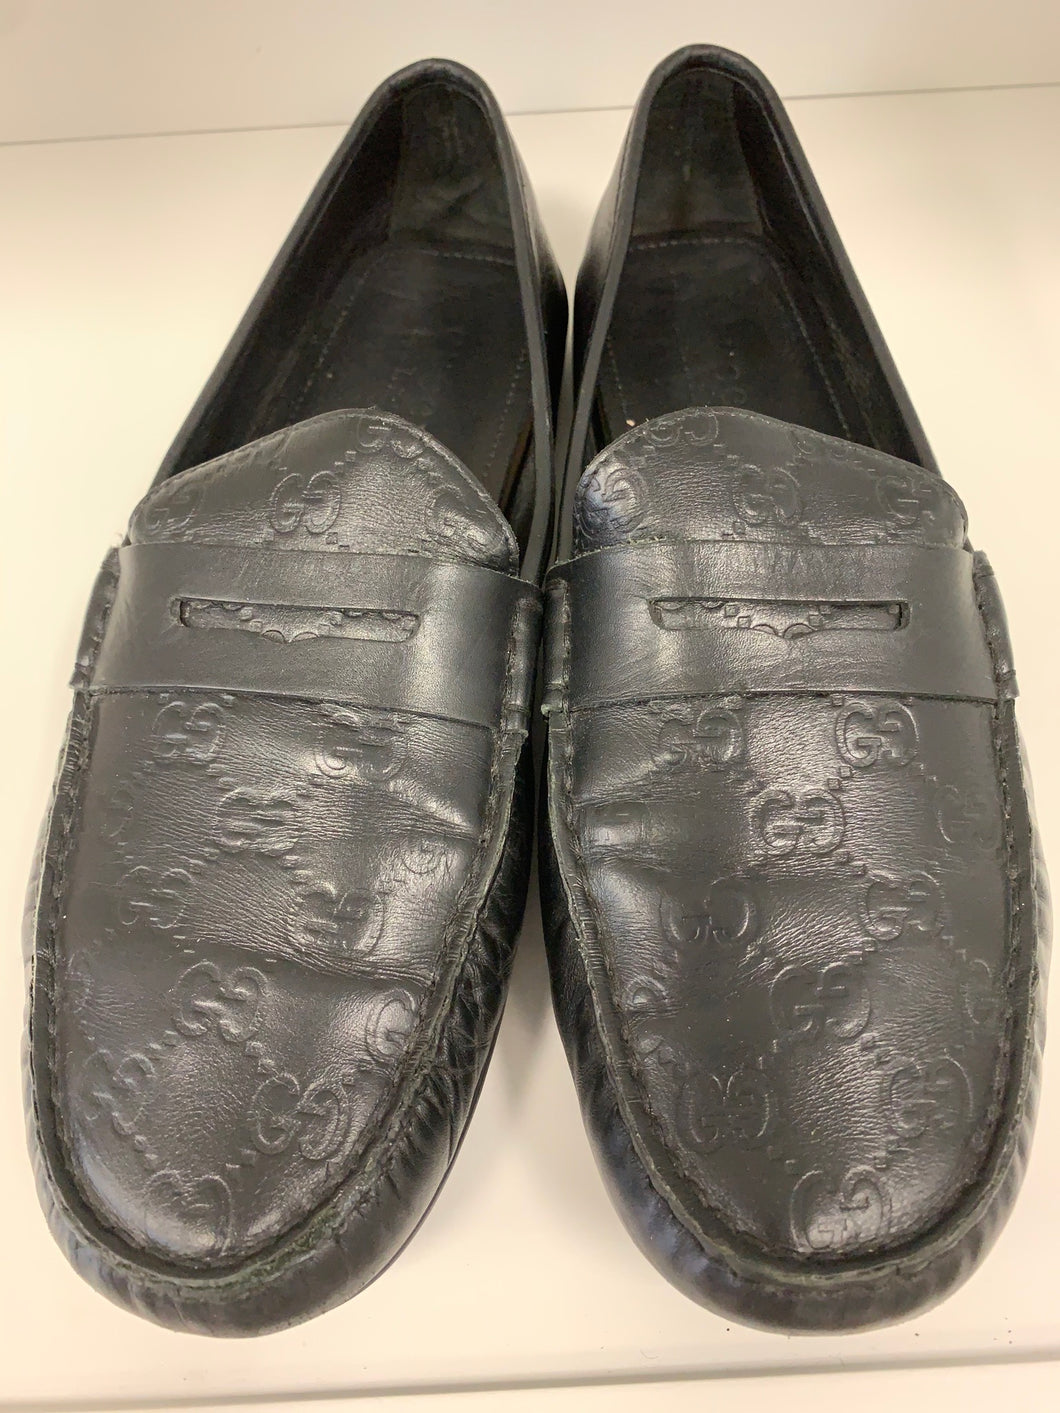 Gucci Signature Driver black  loafers size 12US